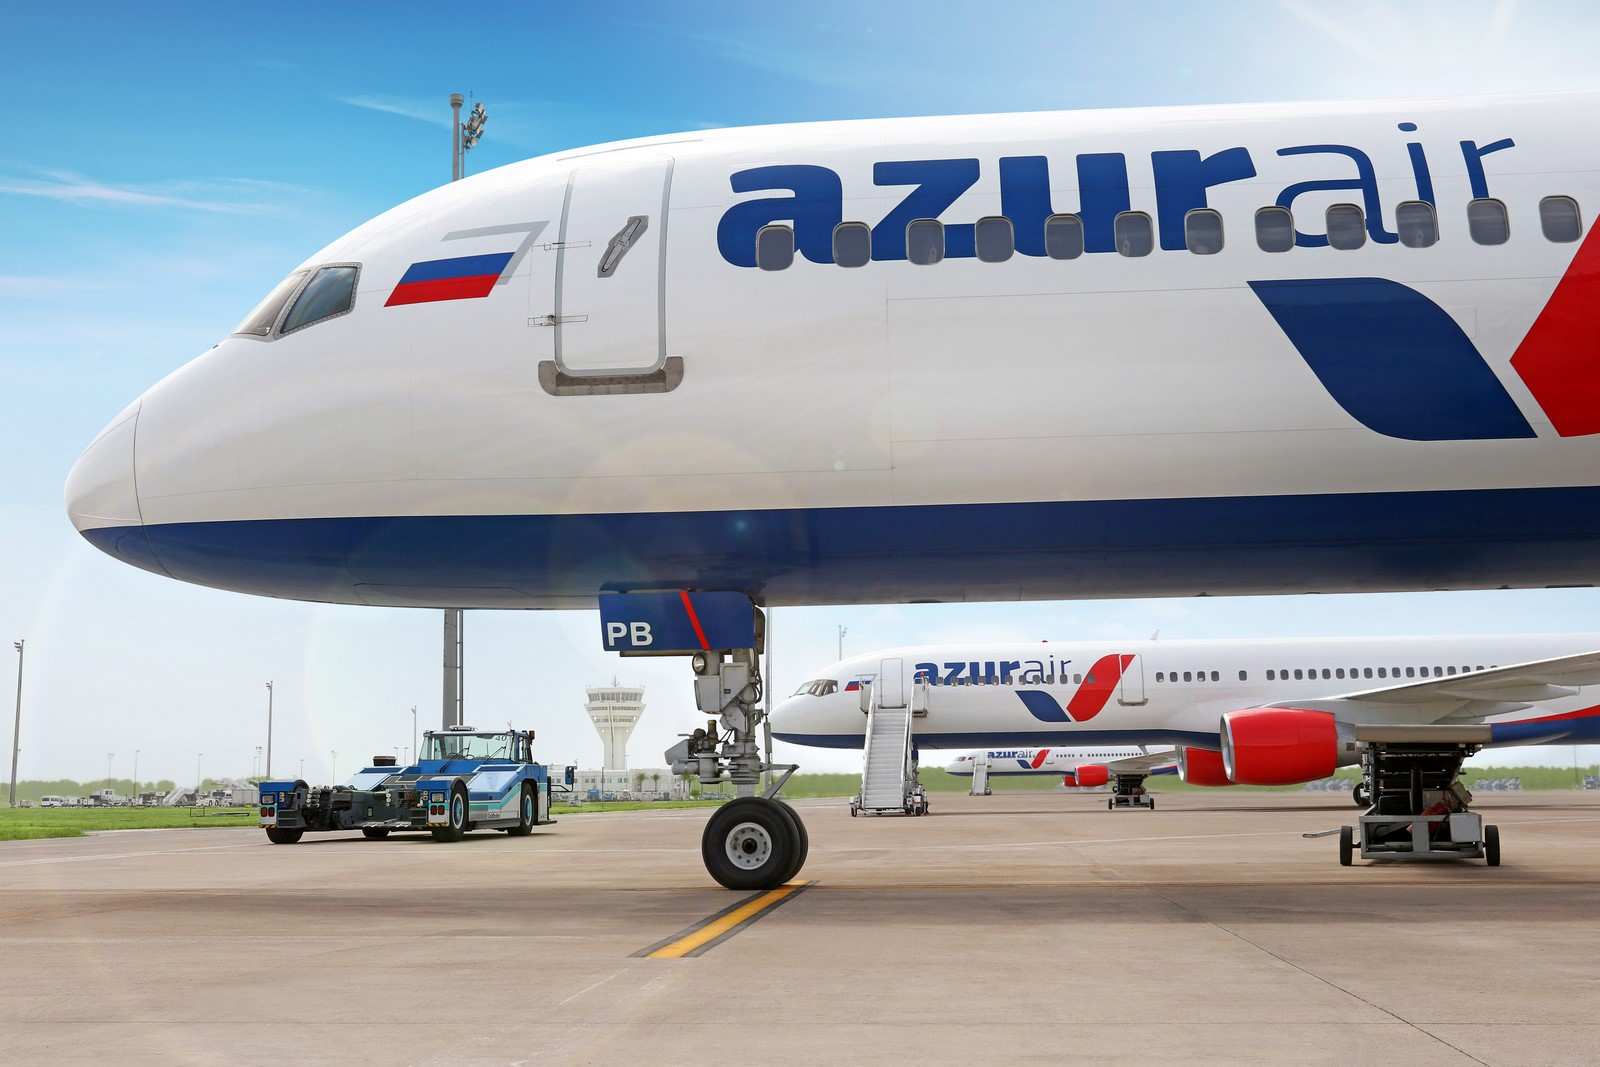 Azur air photogallery image 03